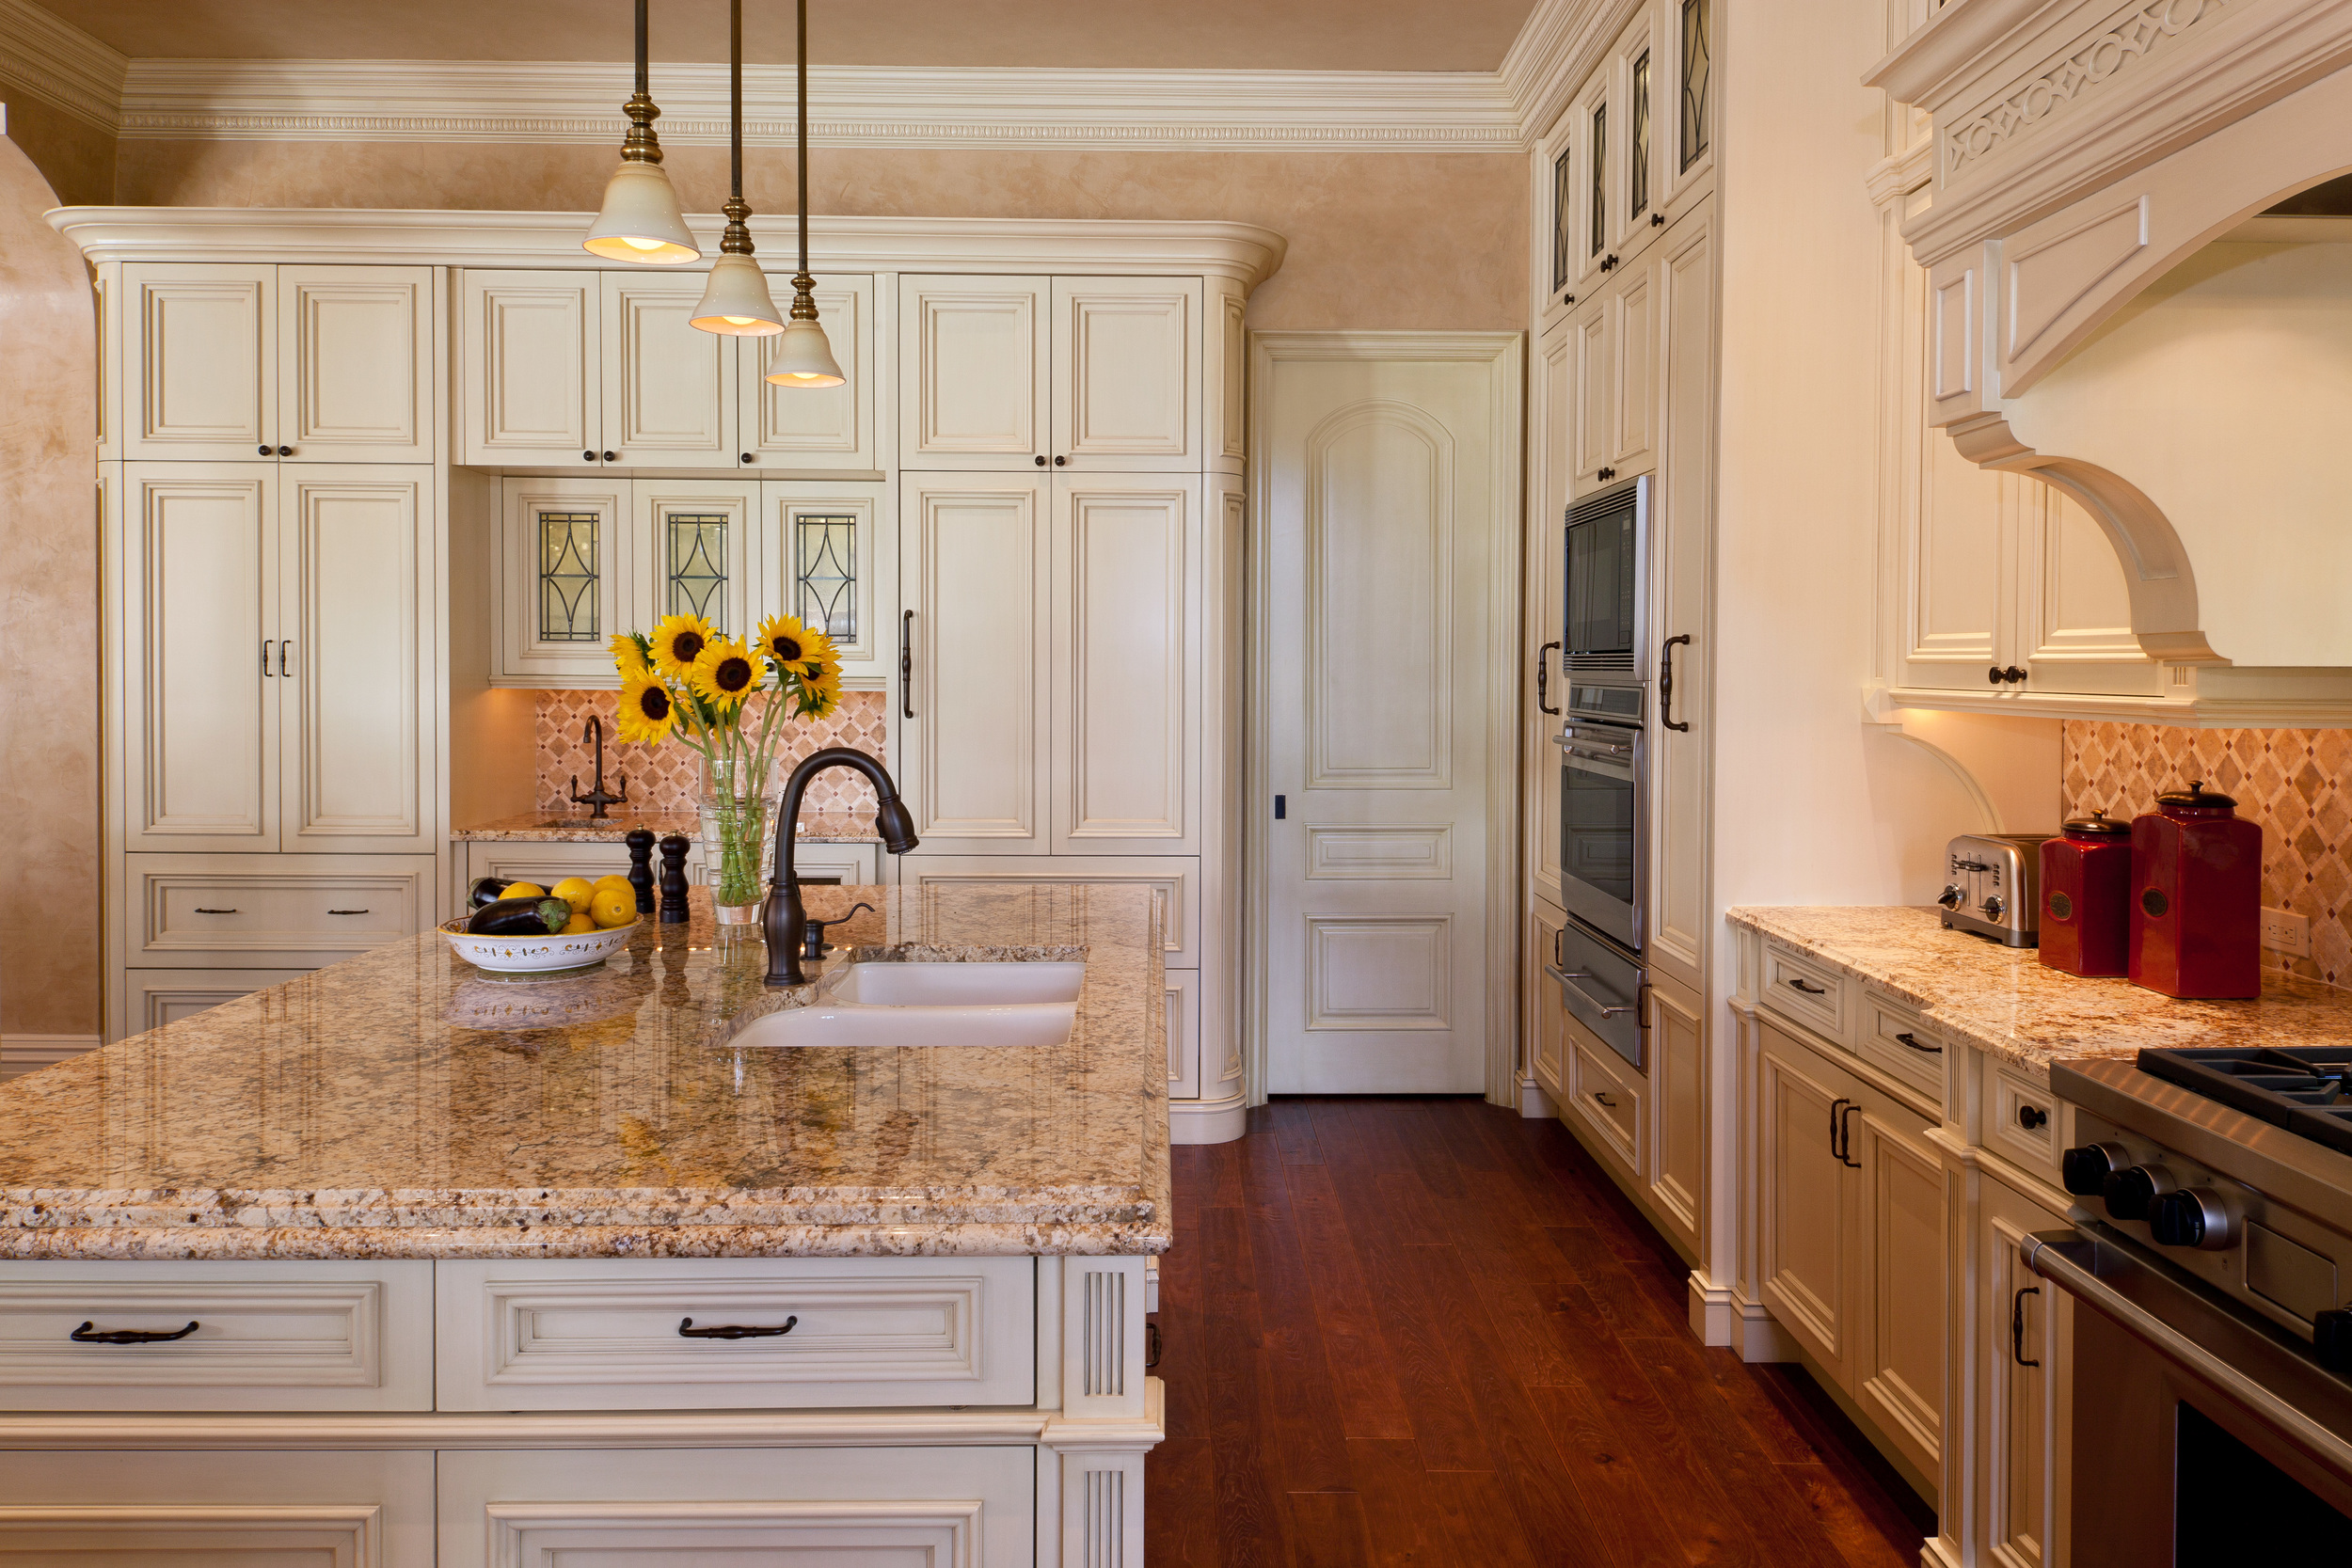 Nestled into the pantry wall, the large storage and bar unit sits perfectly below the coffered ceiling. They myriad of special details in this kitchen cabinetry and architectural millwork marry flawlessly.